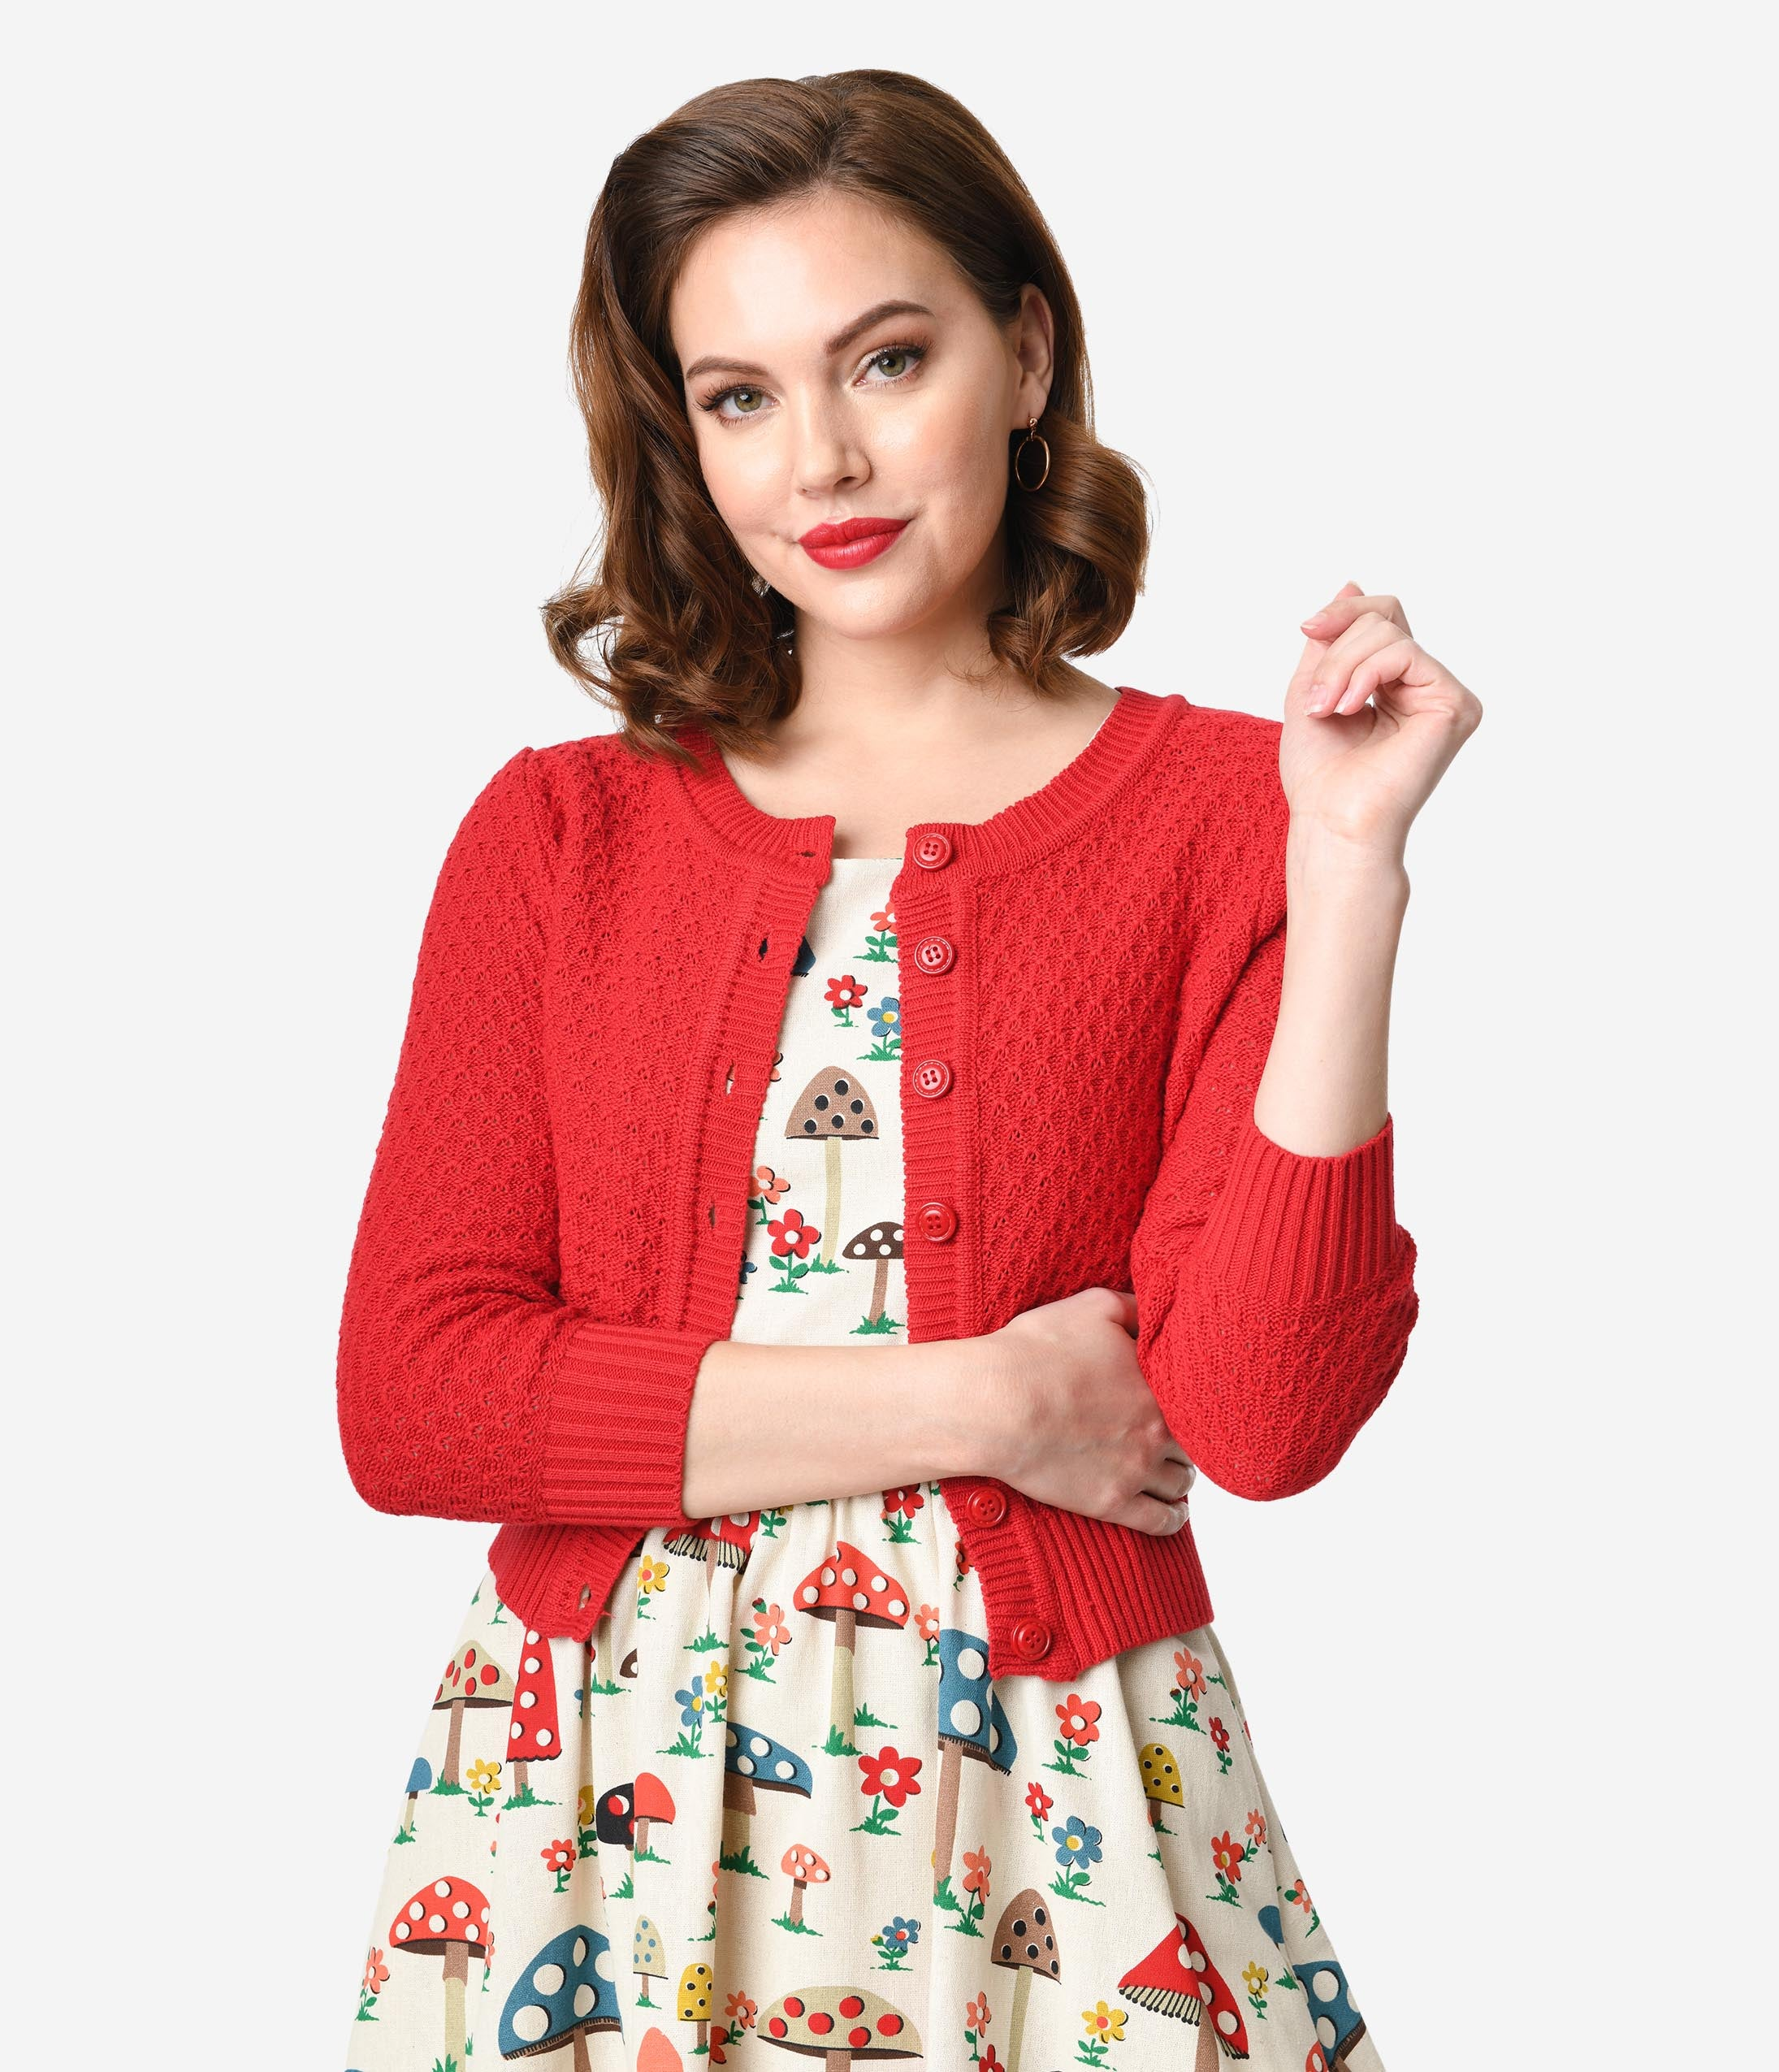 Vintage Sweaters: Cable Knit, Fair Isle Cardigans & Sweaters Retro Style Red Cotton Crochet Sleeved Button Cardigan $28.00 AT vintagedancer.com